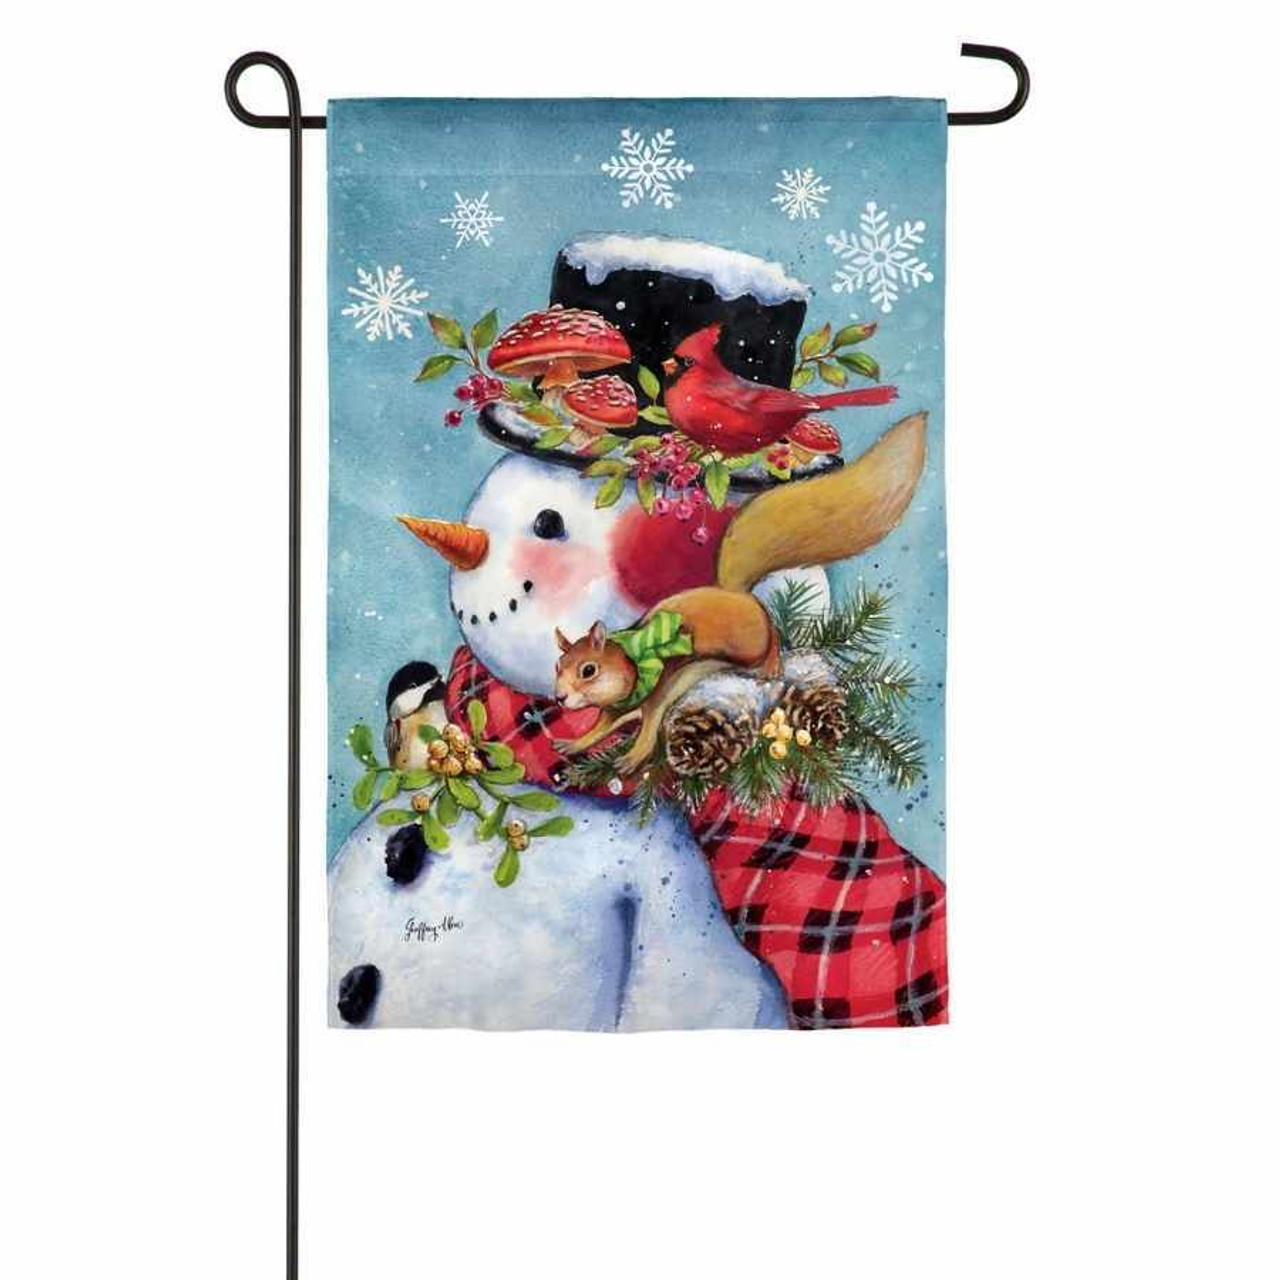 A flag with a side view of a snowman wearing a top hat and a scarf. On his shoulders are acorns, a squirrel wearing a scarf, and a bird. A red bird, mushrooms, and mistletoe are on the brim of him hat.  The background is a light blue with white snowflakes.